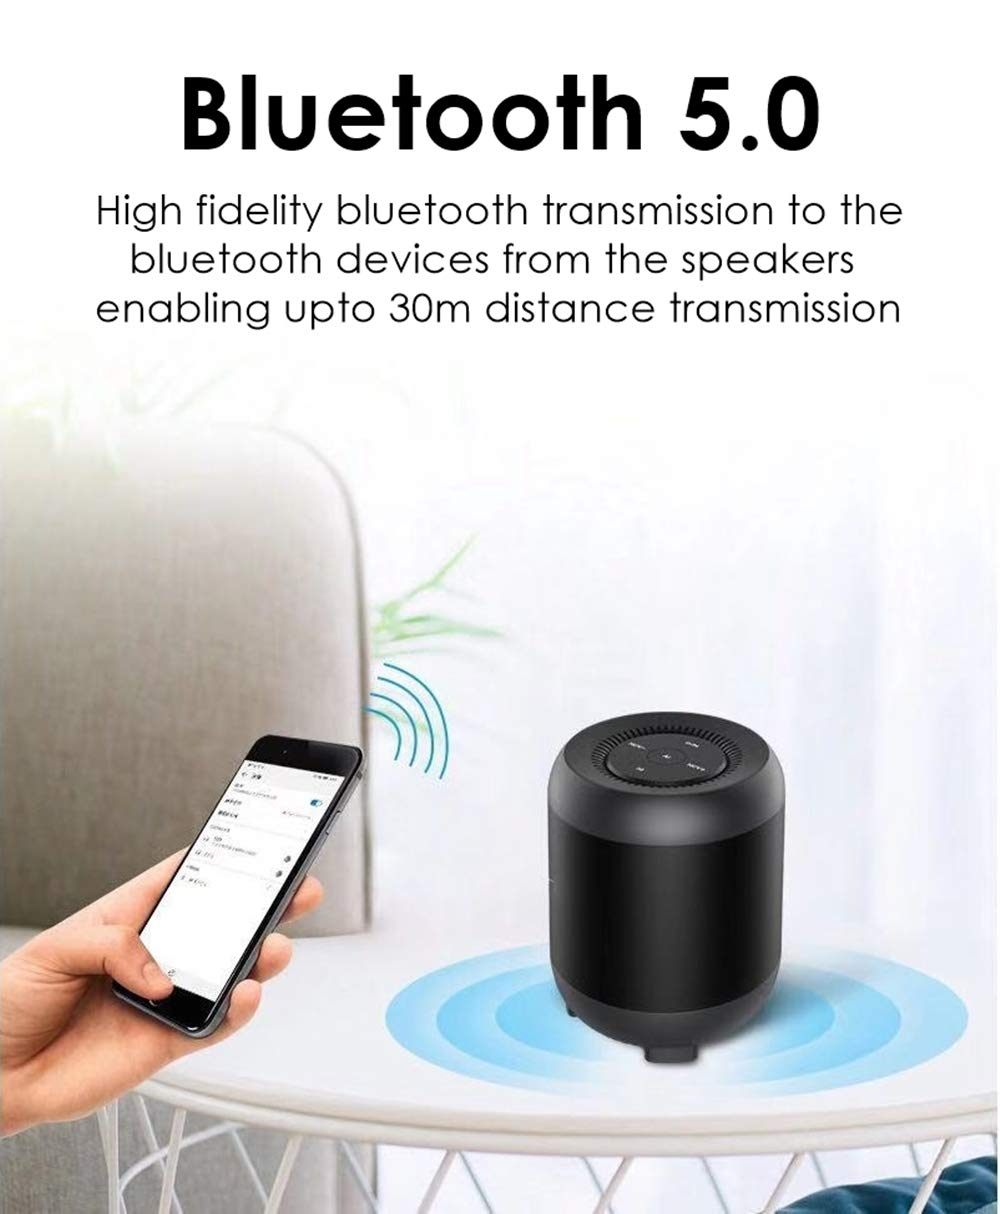 Clavier Atom Portable Bluetooth Speaker, Bluetooth 5.0 Wireless Speakers with HD Sound and Rich Bass, LED Flashing Light, Built-in Mic for iPhone & Android